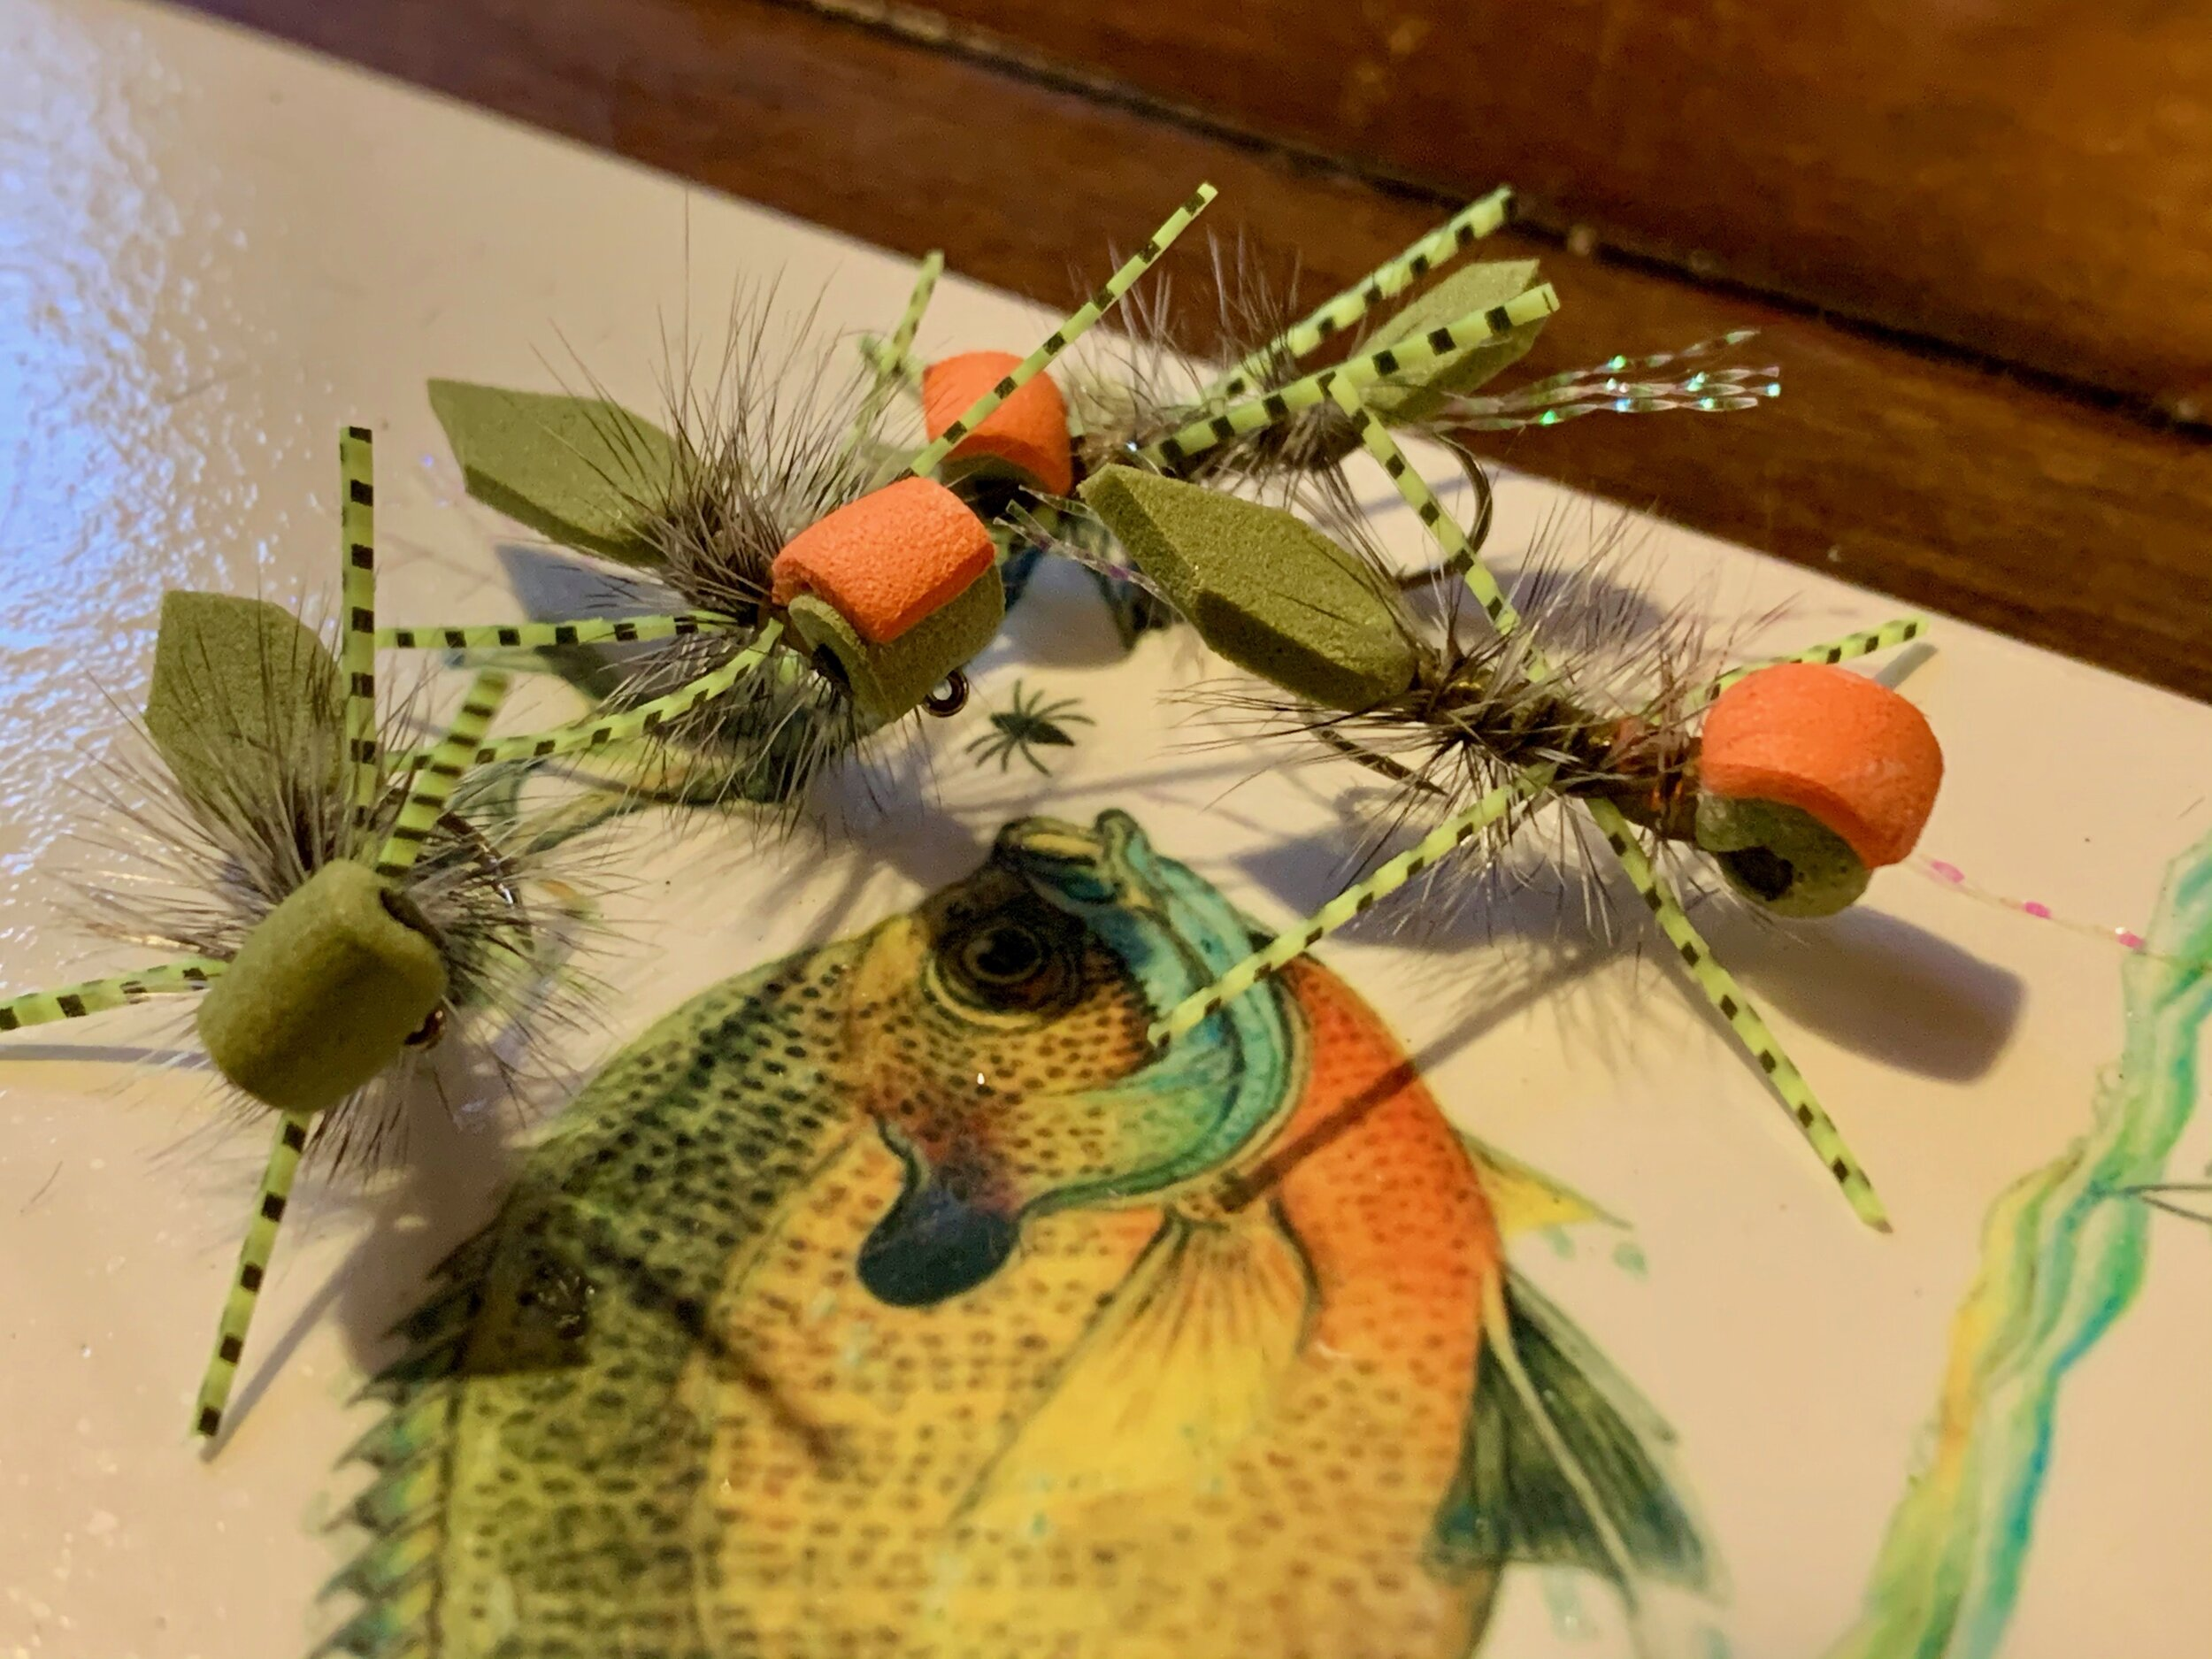 Olive Micro Gurglers with black foam eyes. You can see how the addition of a brightly colored indicator would help the angler see the fly on the water!